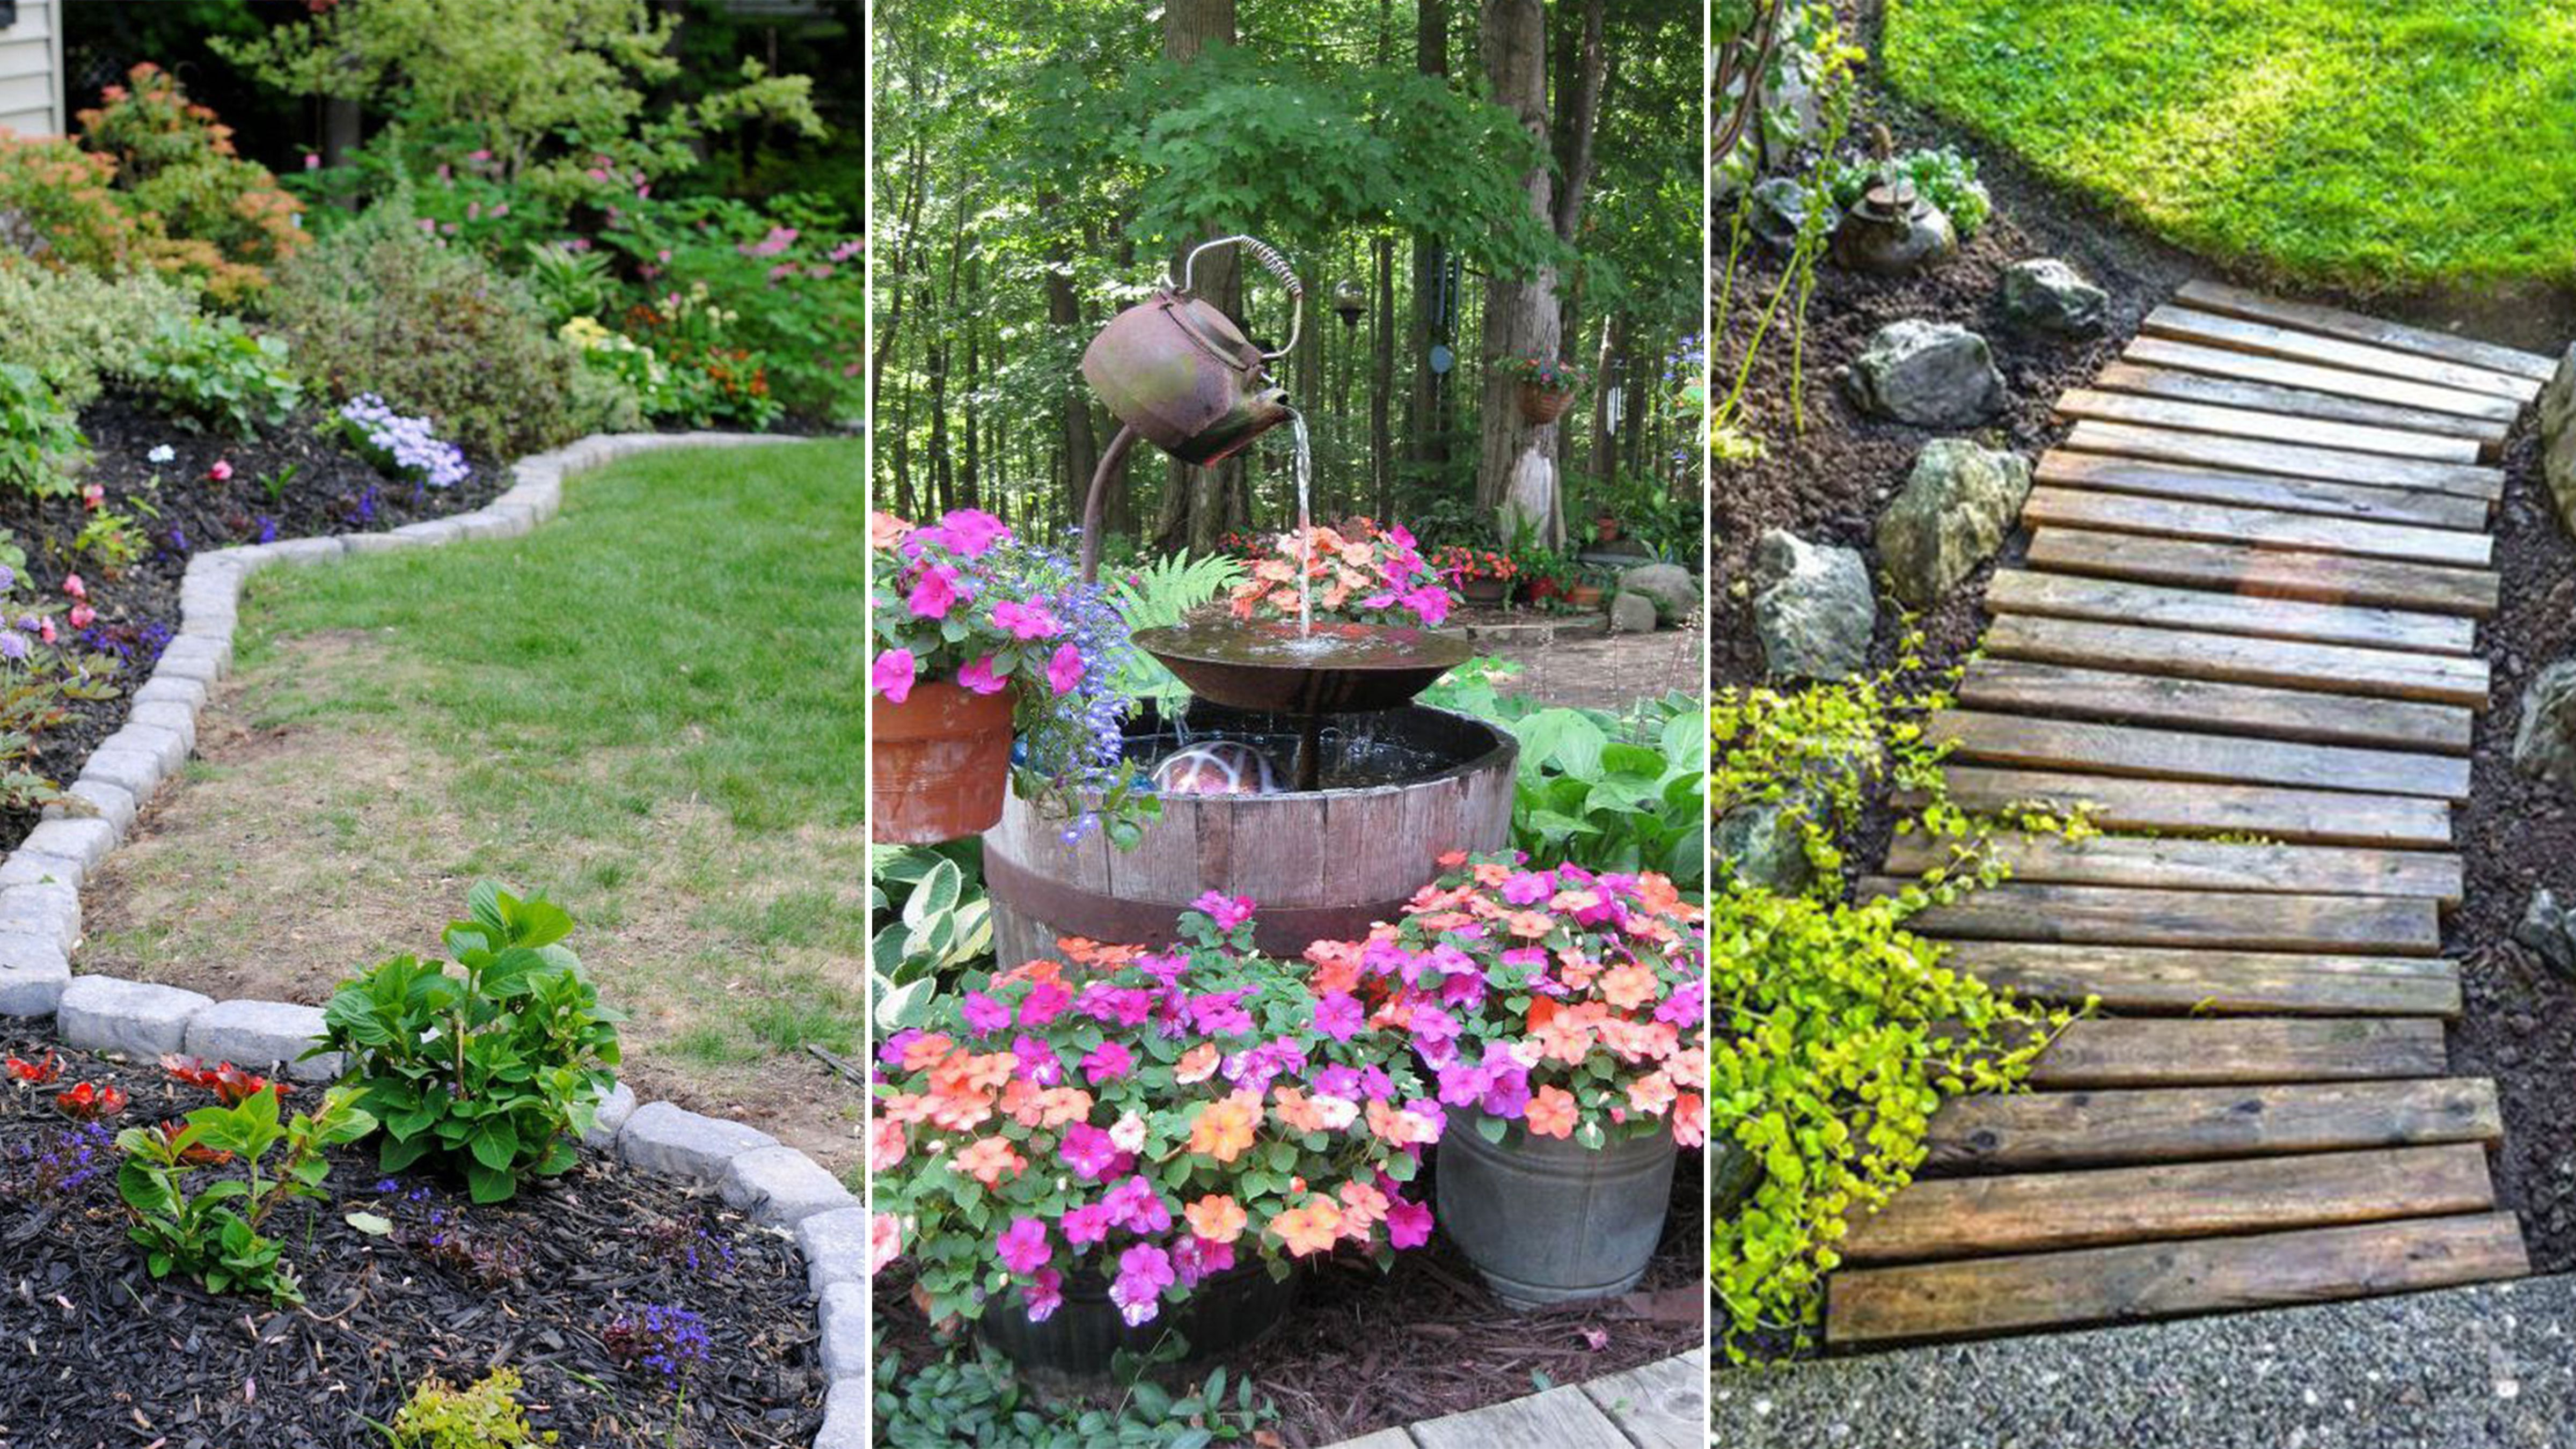 128 Cost To Redo Backyard Home Decor with 11 Clever Ideas How to Upgrade Cost Of Backyard Landscaping